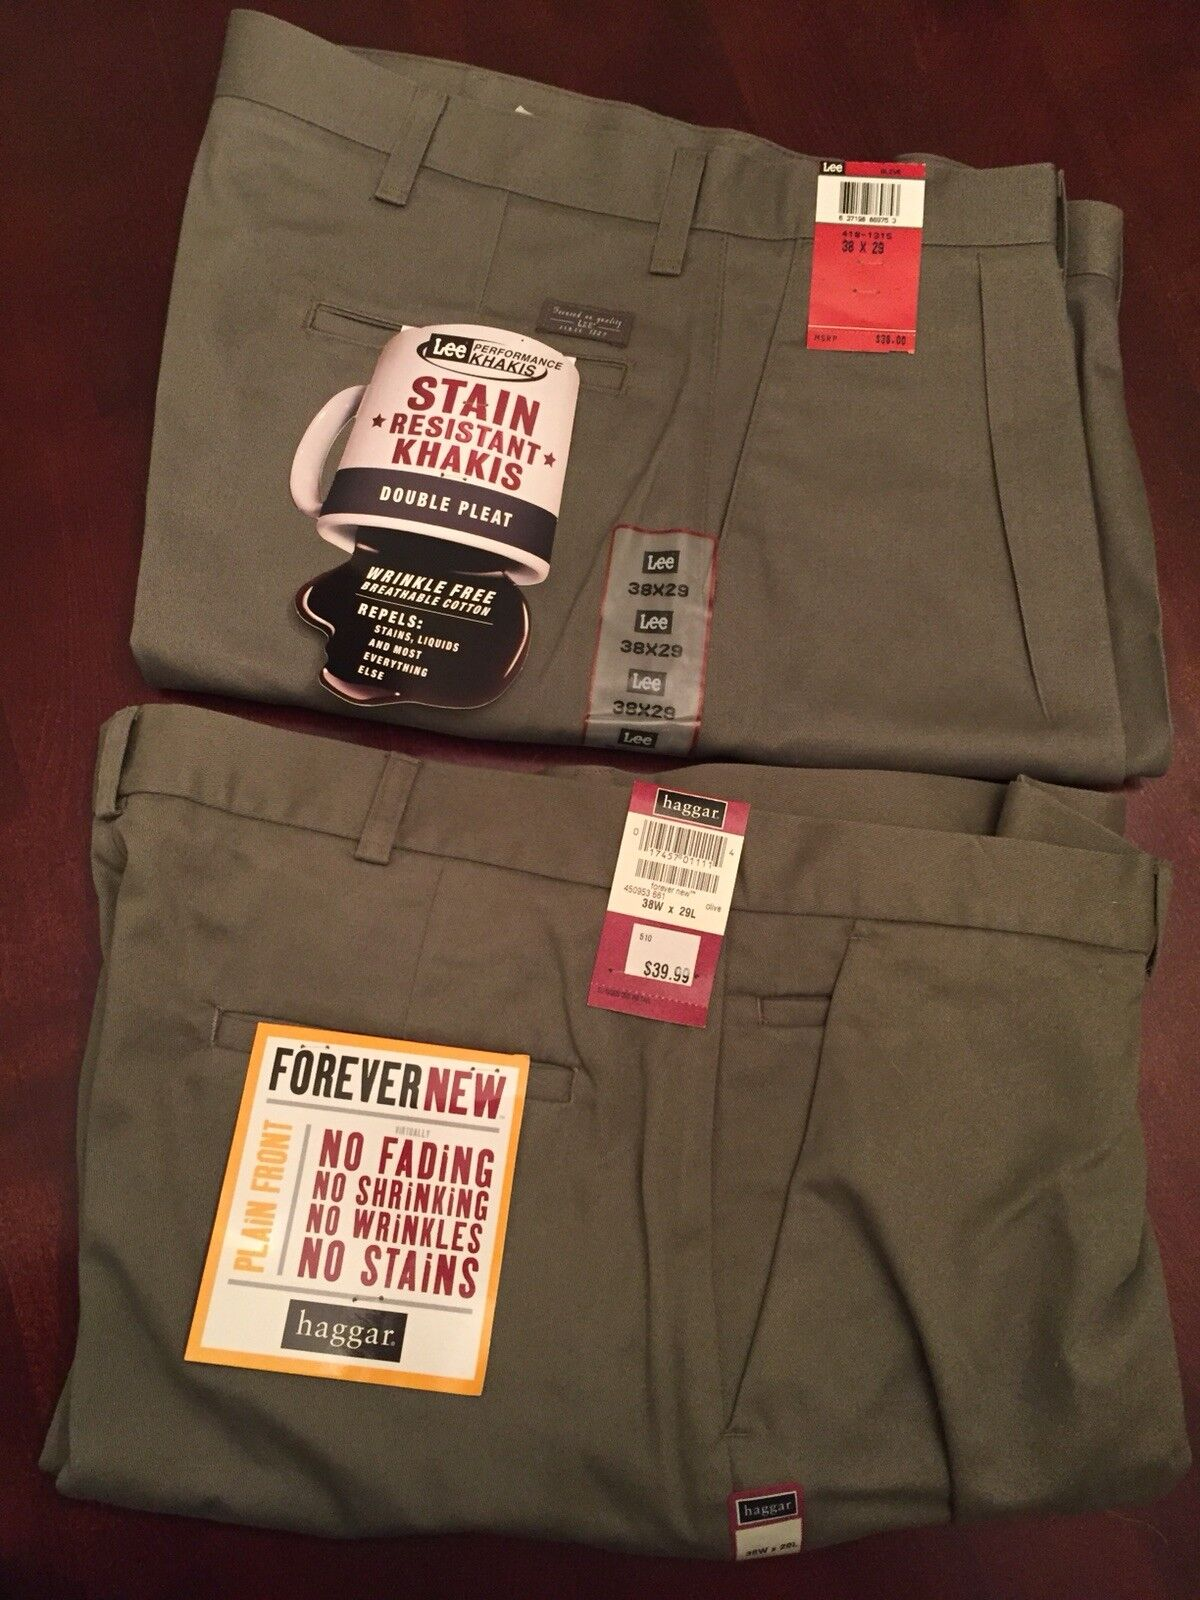 2 Olive Casual Cotton Pants  38x29  Lee + Haggar  Double Pleat + Flat Front  NWT